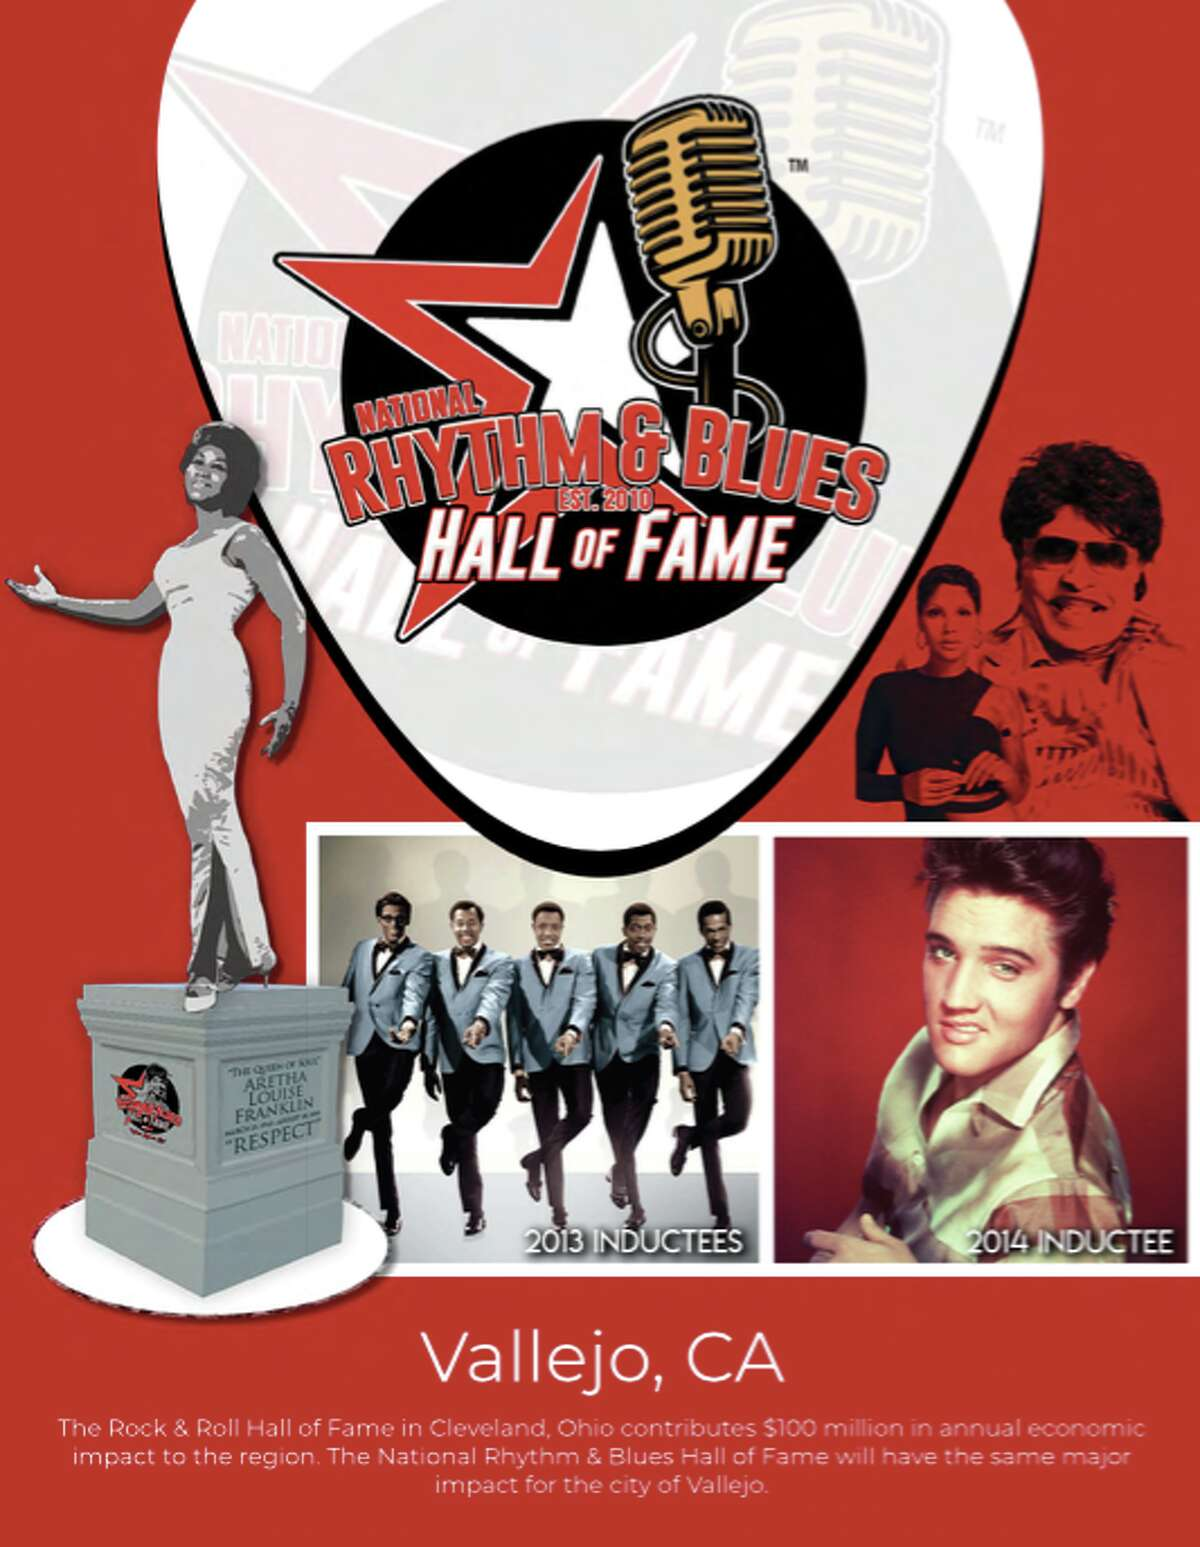 Vallejo is being considered as a possible site for the National R&B Hall of Fame, the project's founder and CEO LaMont Robinson said.